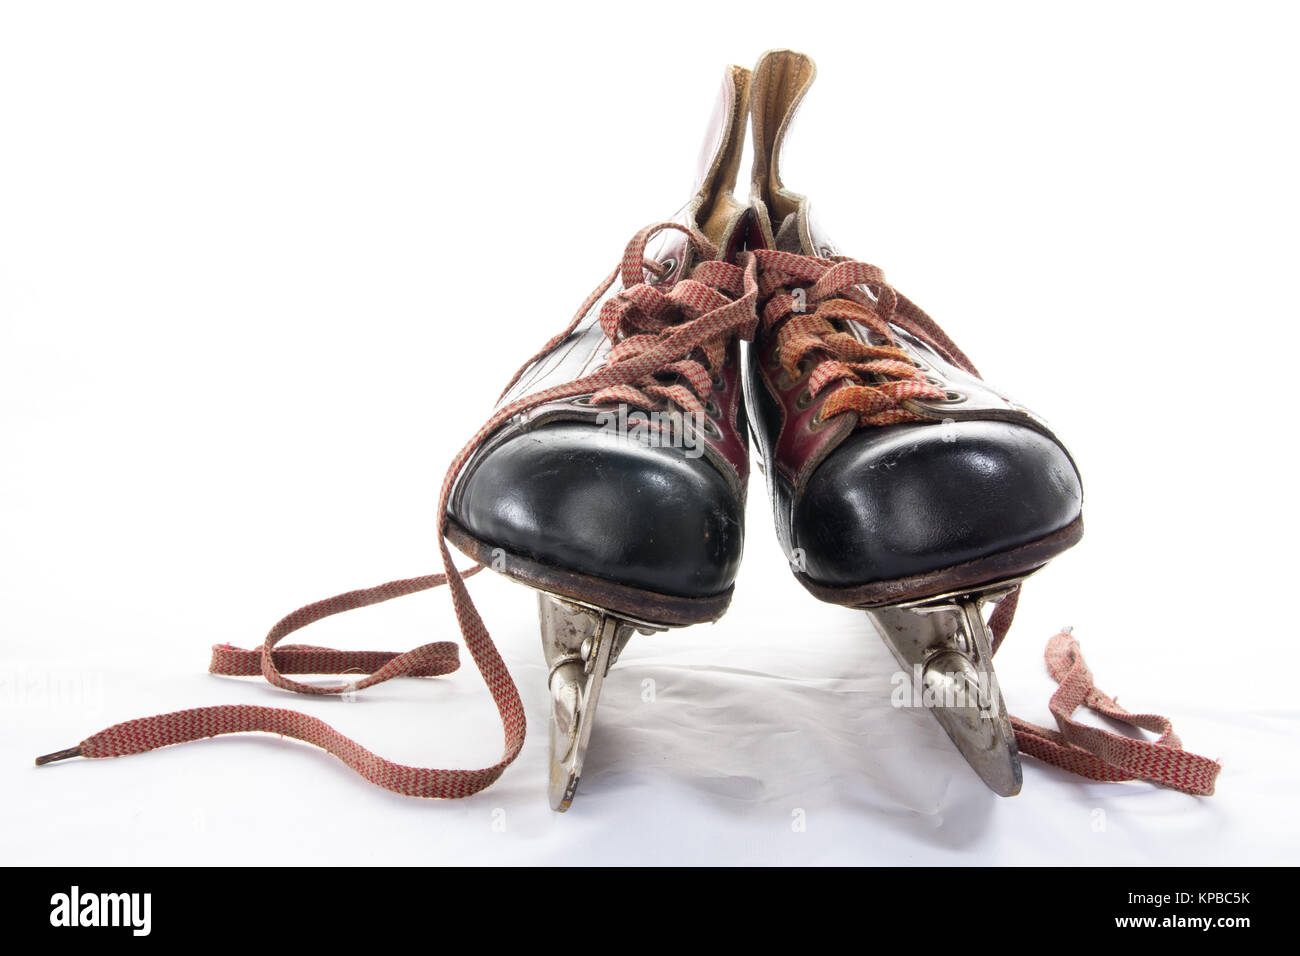 Two very old ice hockey skates on white background - Stock Image